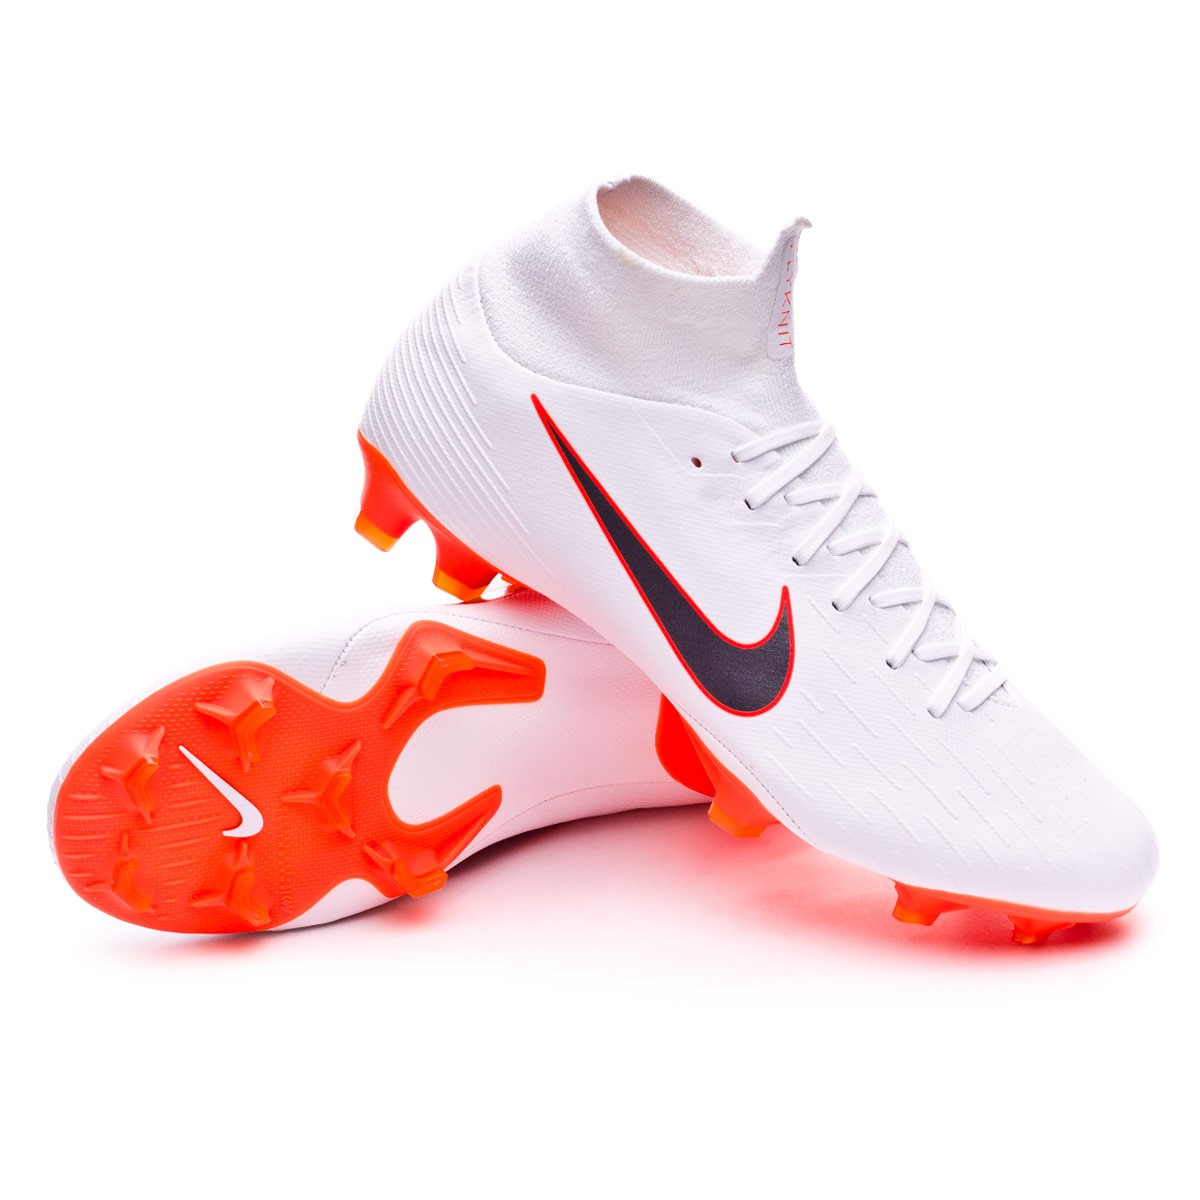 f72f6f89e0c2 Bota Mercurial Superfly VI Pro FG White-Metallic cool grey-Total orange